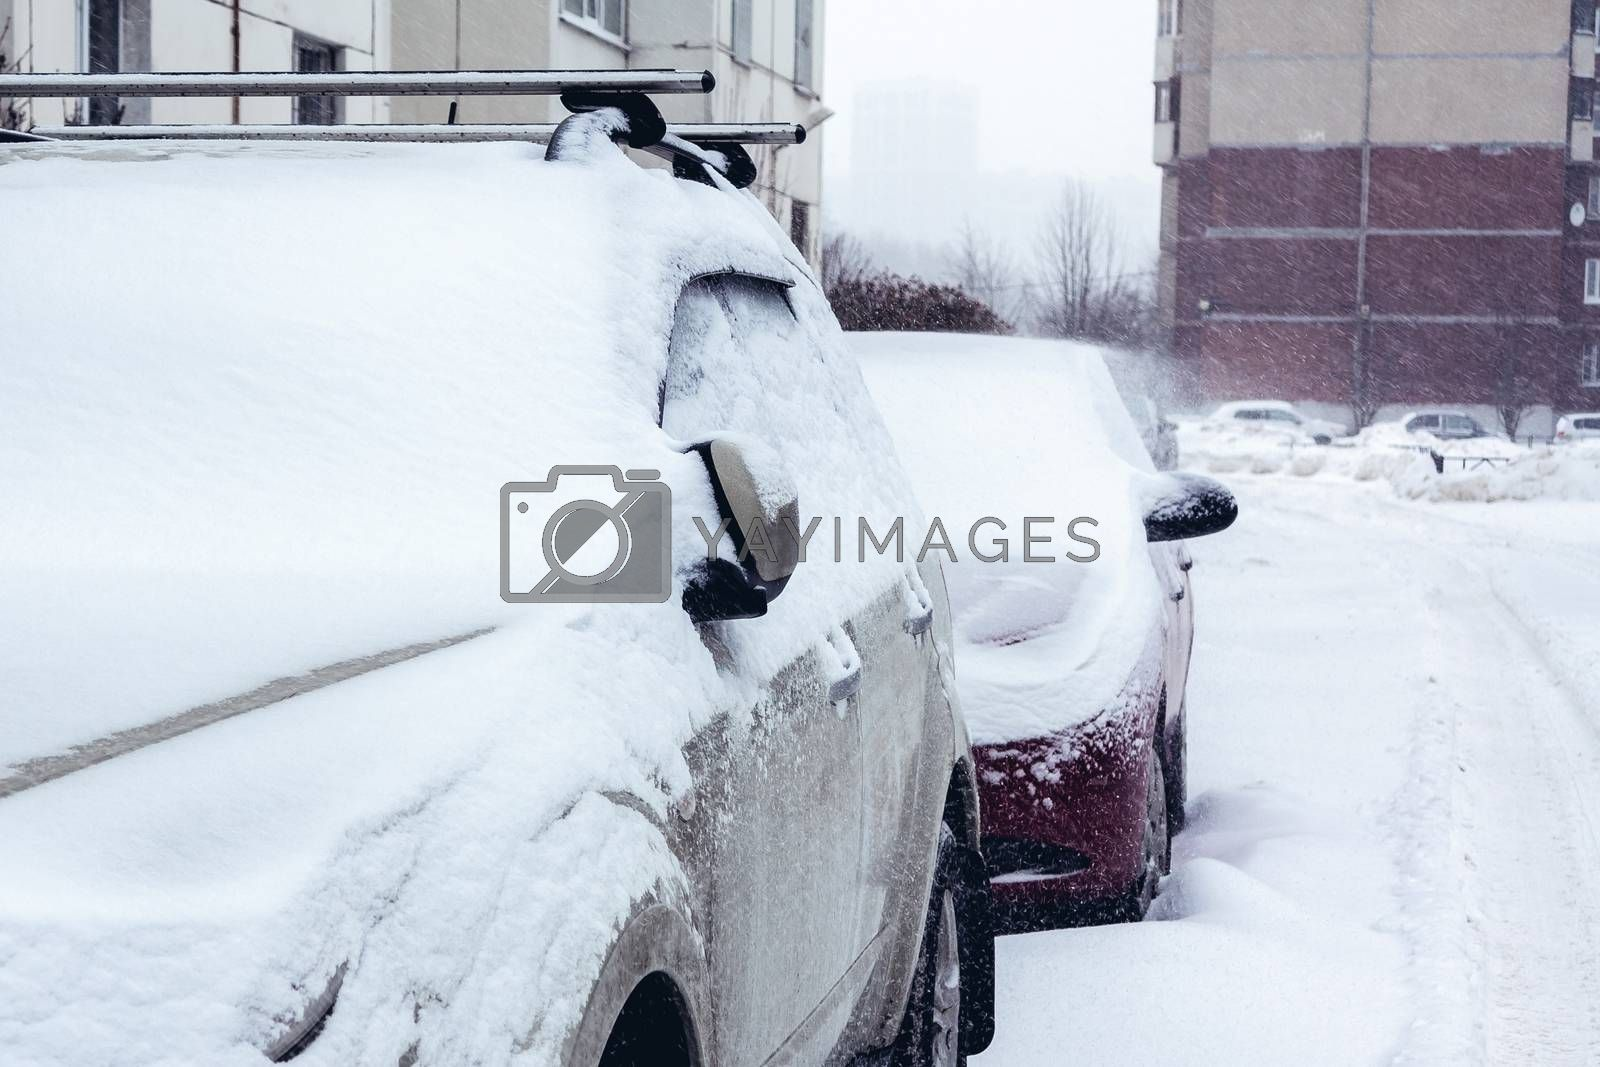 Snowfall in the city, cars overwhelmed with snow by galsand